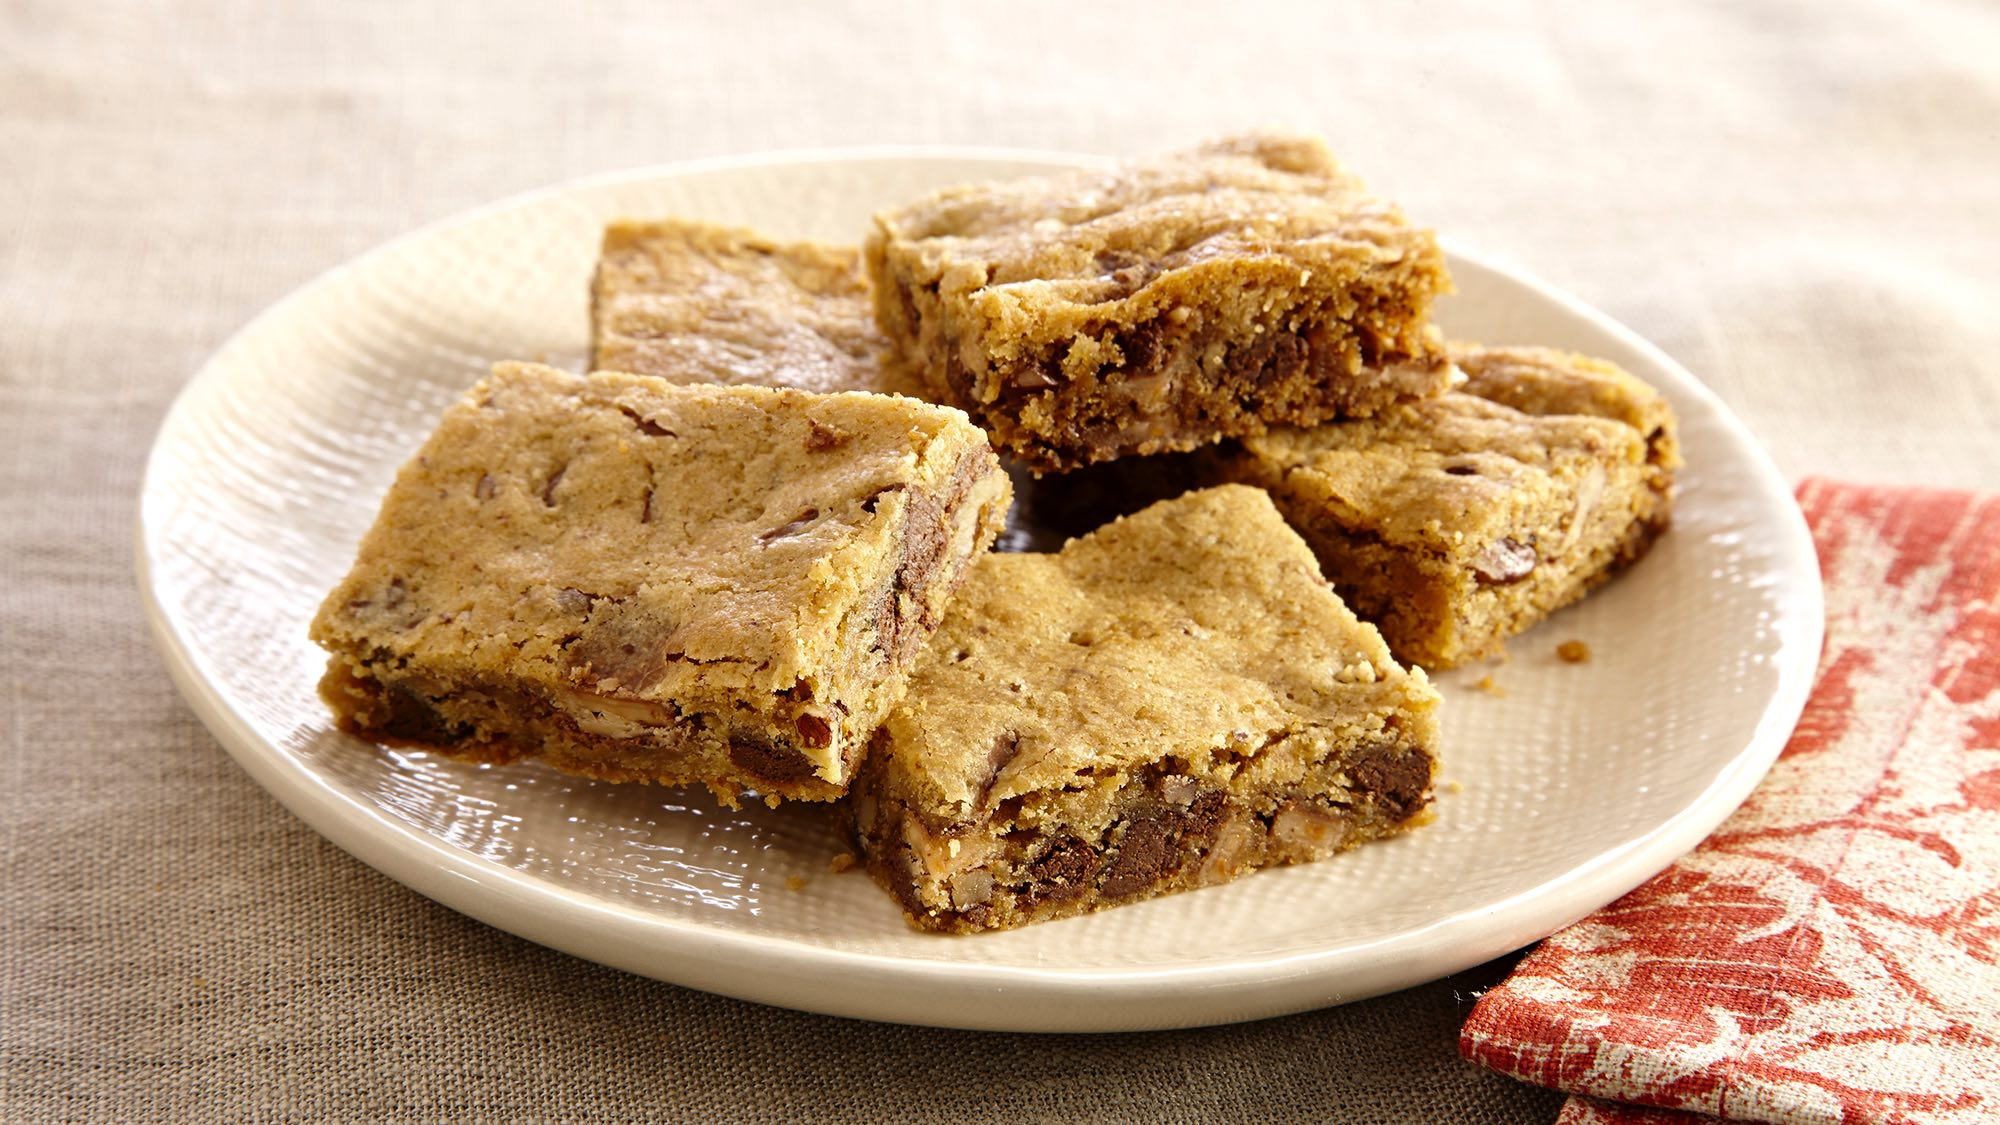 McCormick Toffee Pecan Cookie Bars